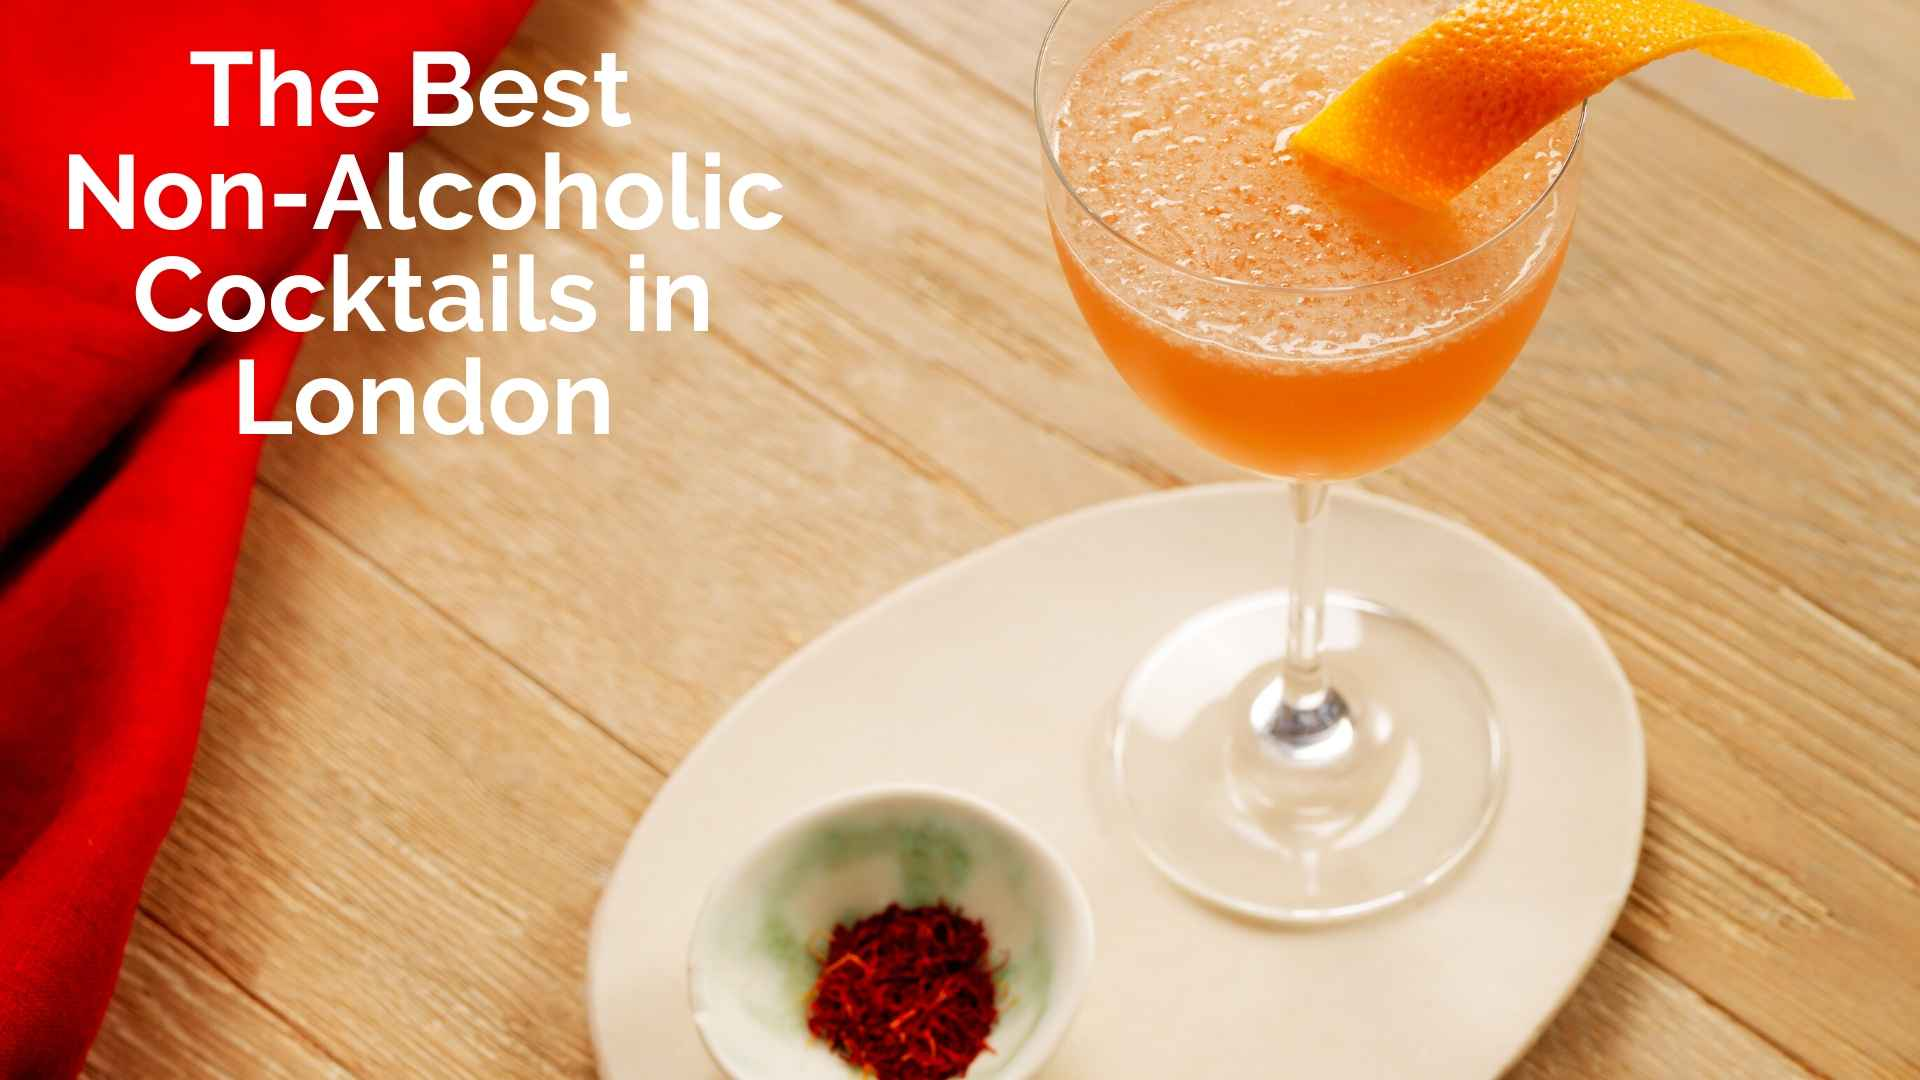 SITE - The Best Non-Alcoholic Cocktails in London